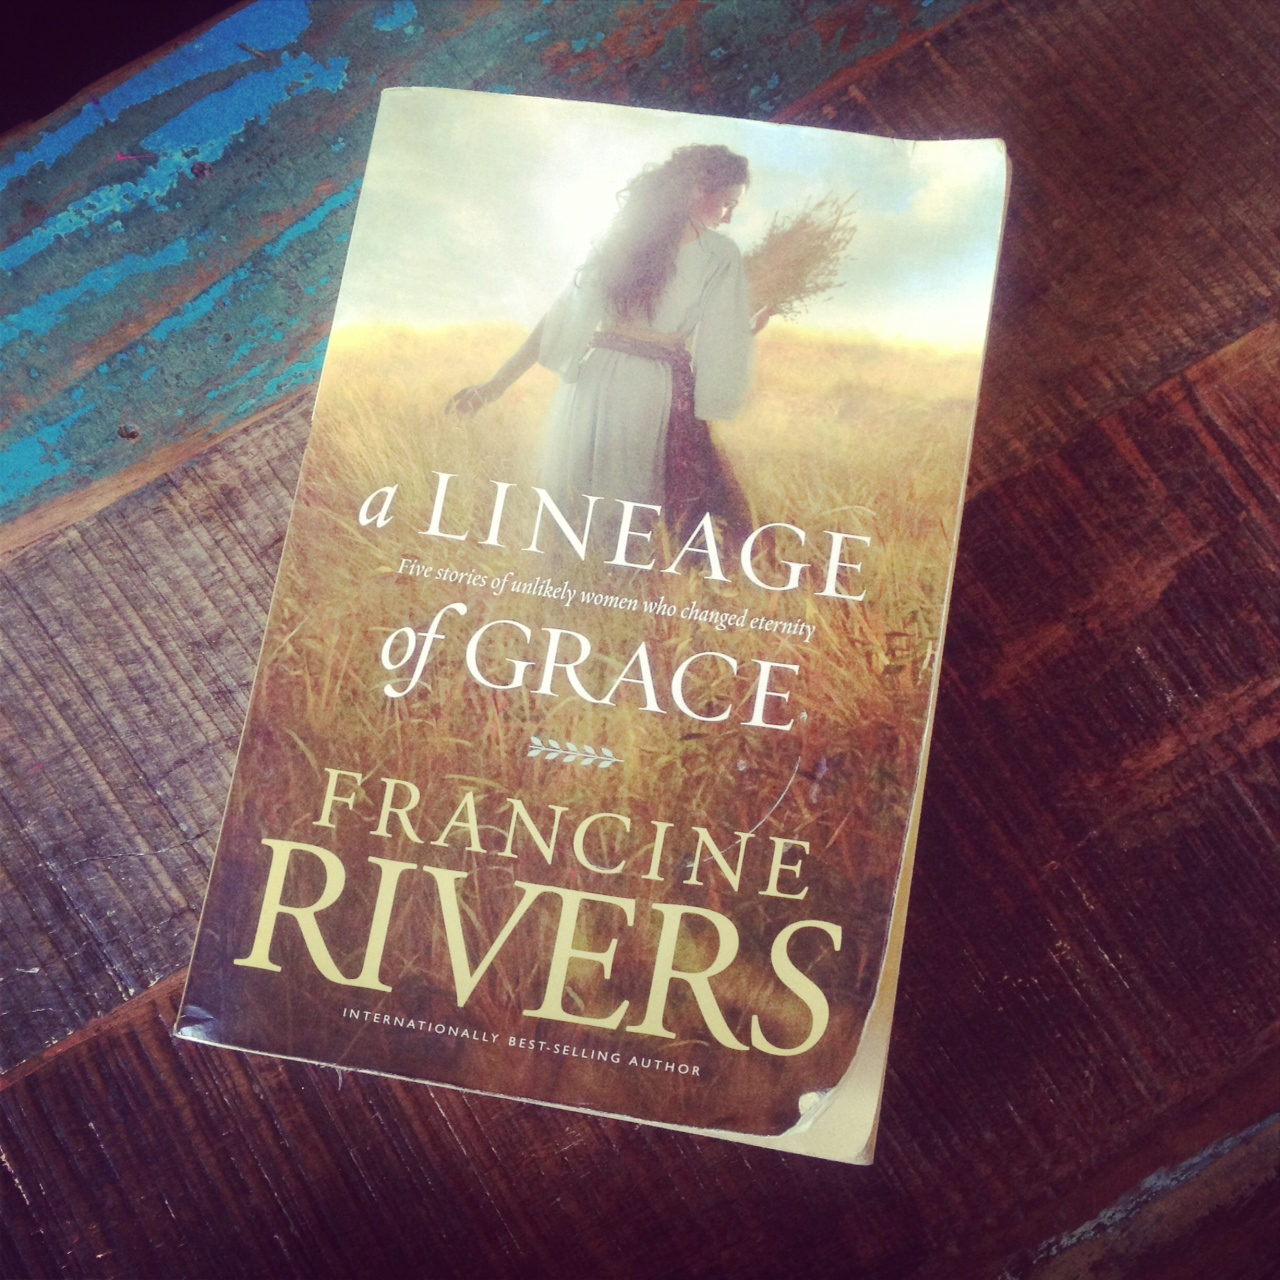 francine rivers a lineage of grace book sitting on a wooden table